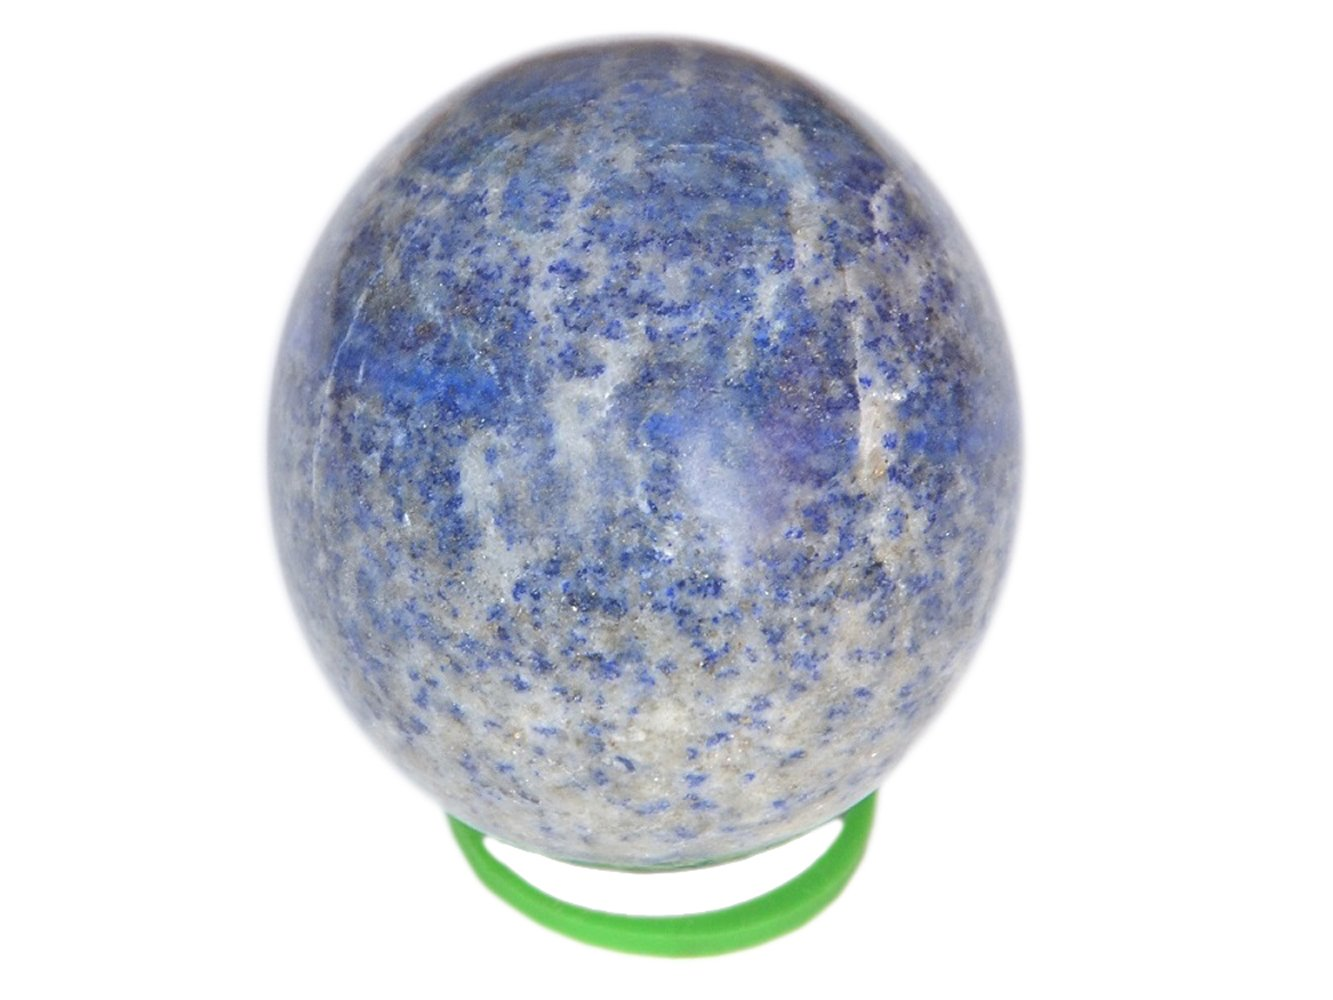 WholesaleGemShop 3 '' Blue Lapis Lazuli Sphere Natural Crystal Ball Polished Mineral Stone Afghanistan by WholesaleGemShop